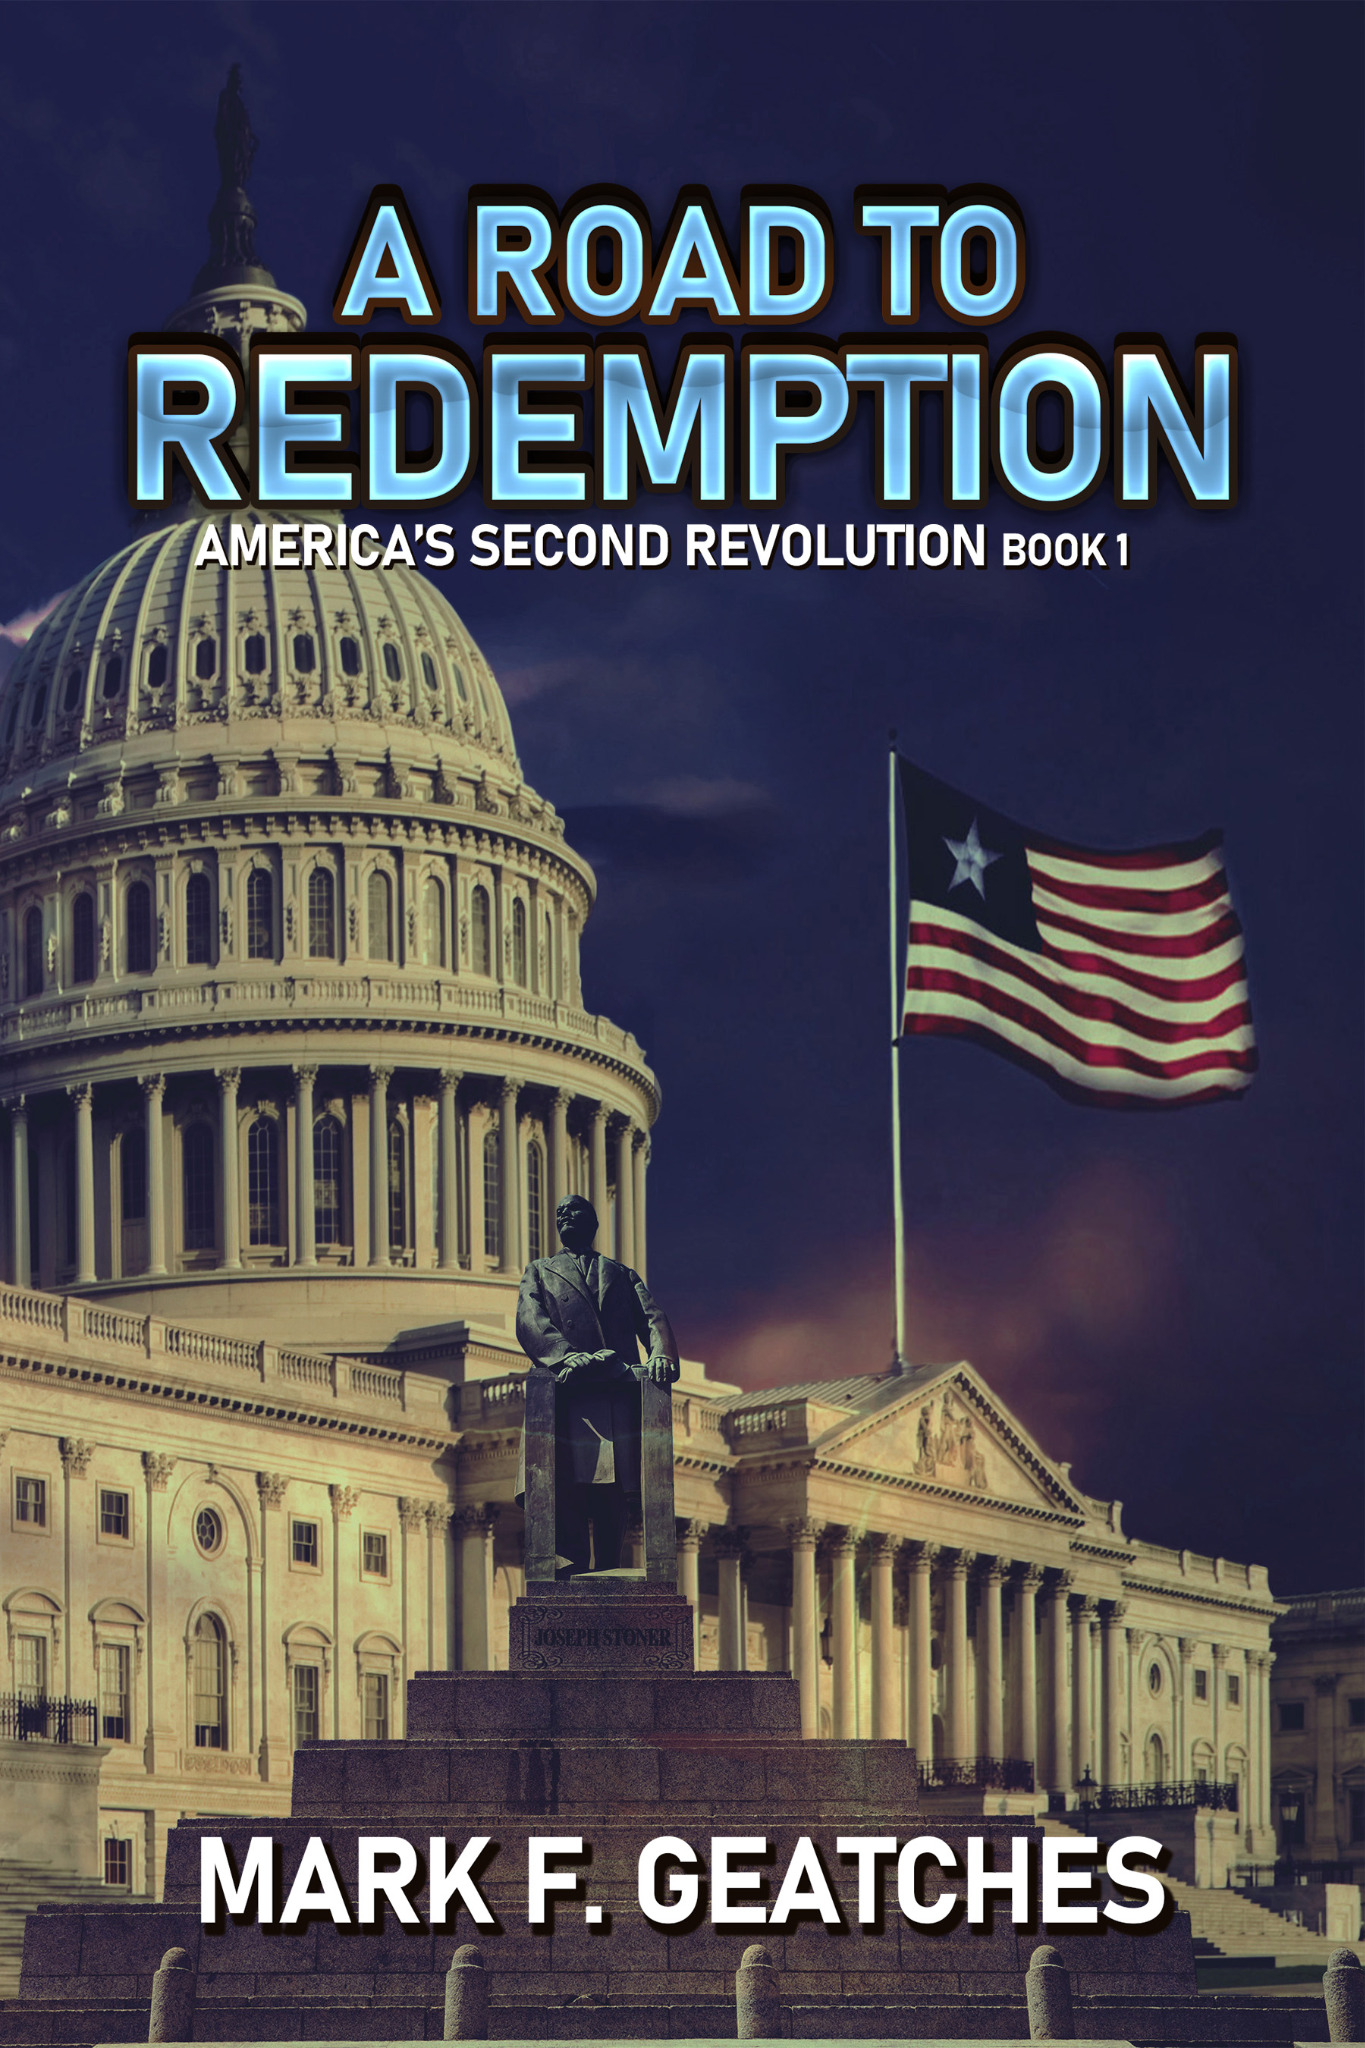 A Road to Redemption - America's Second Revolution Book 1